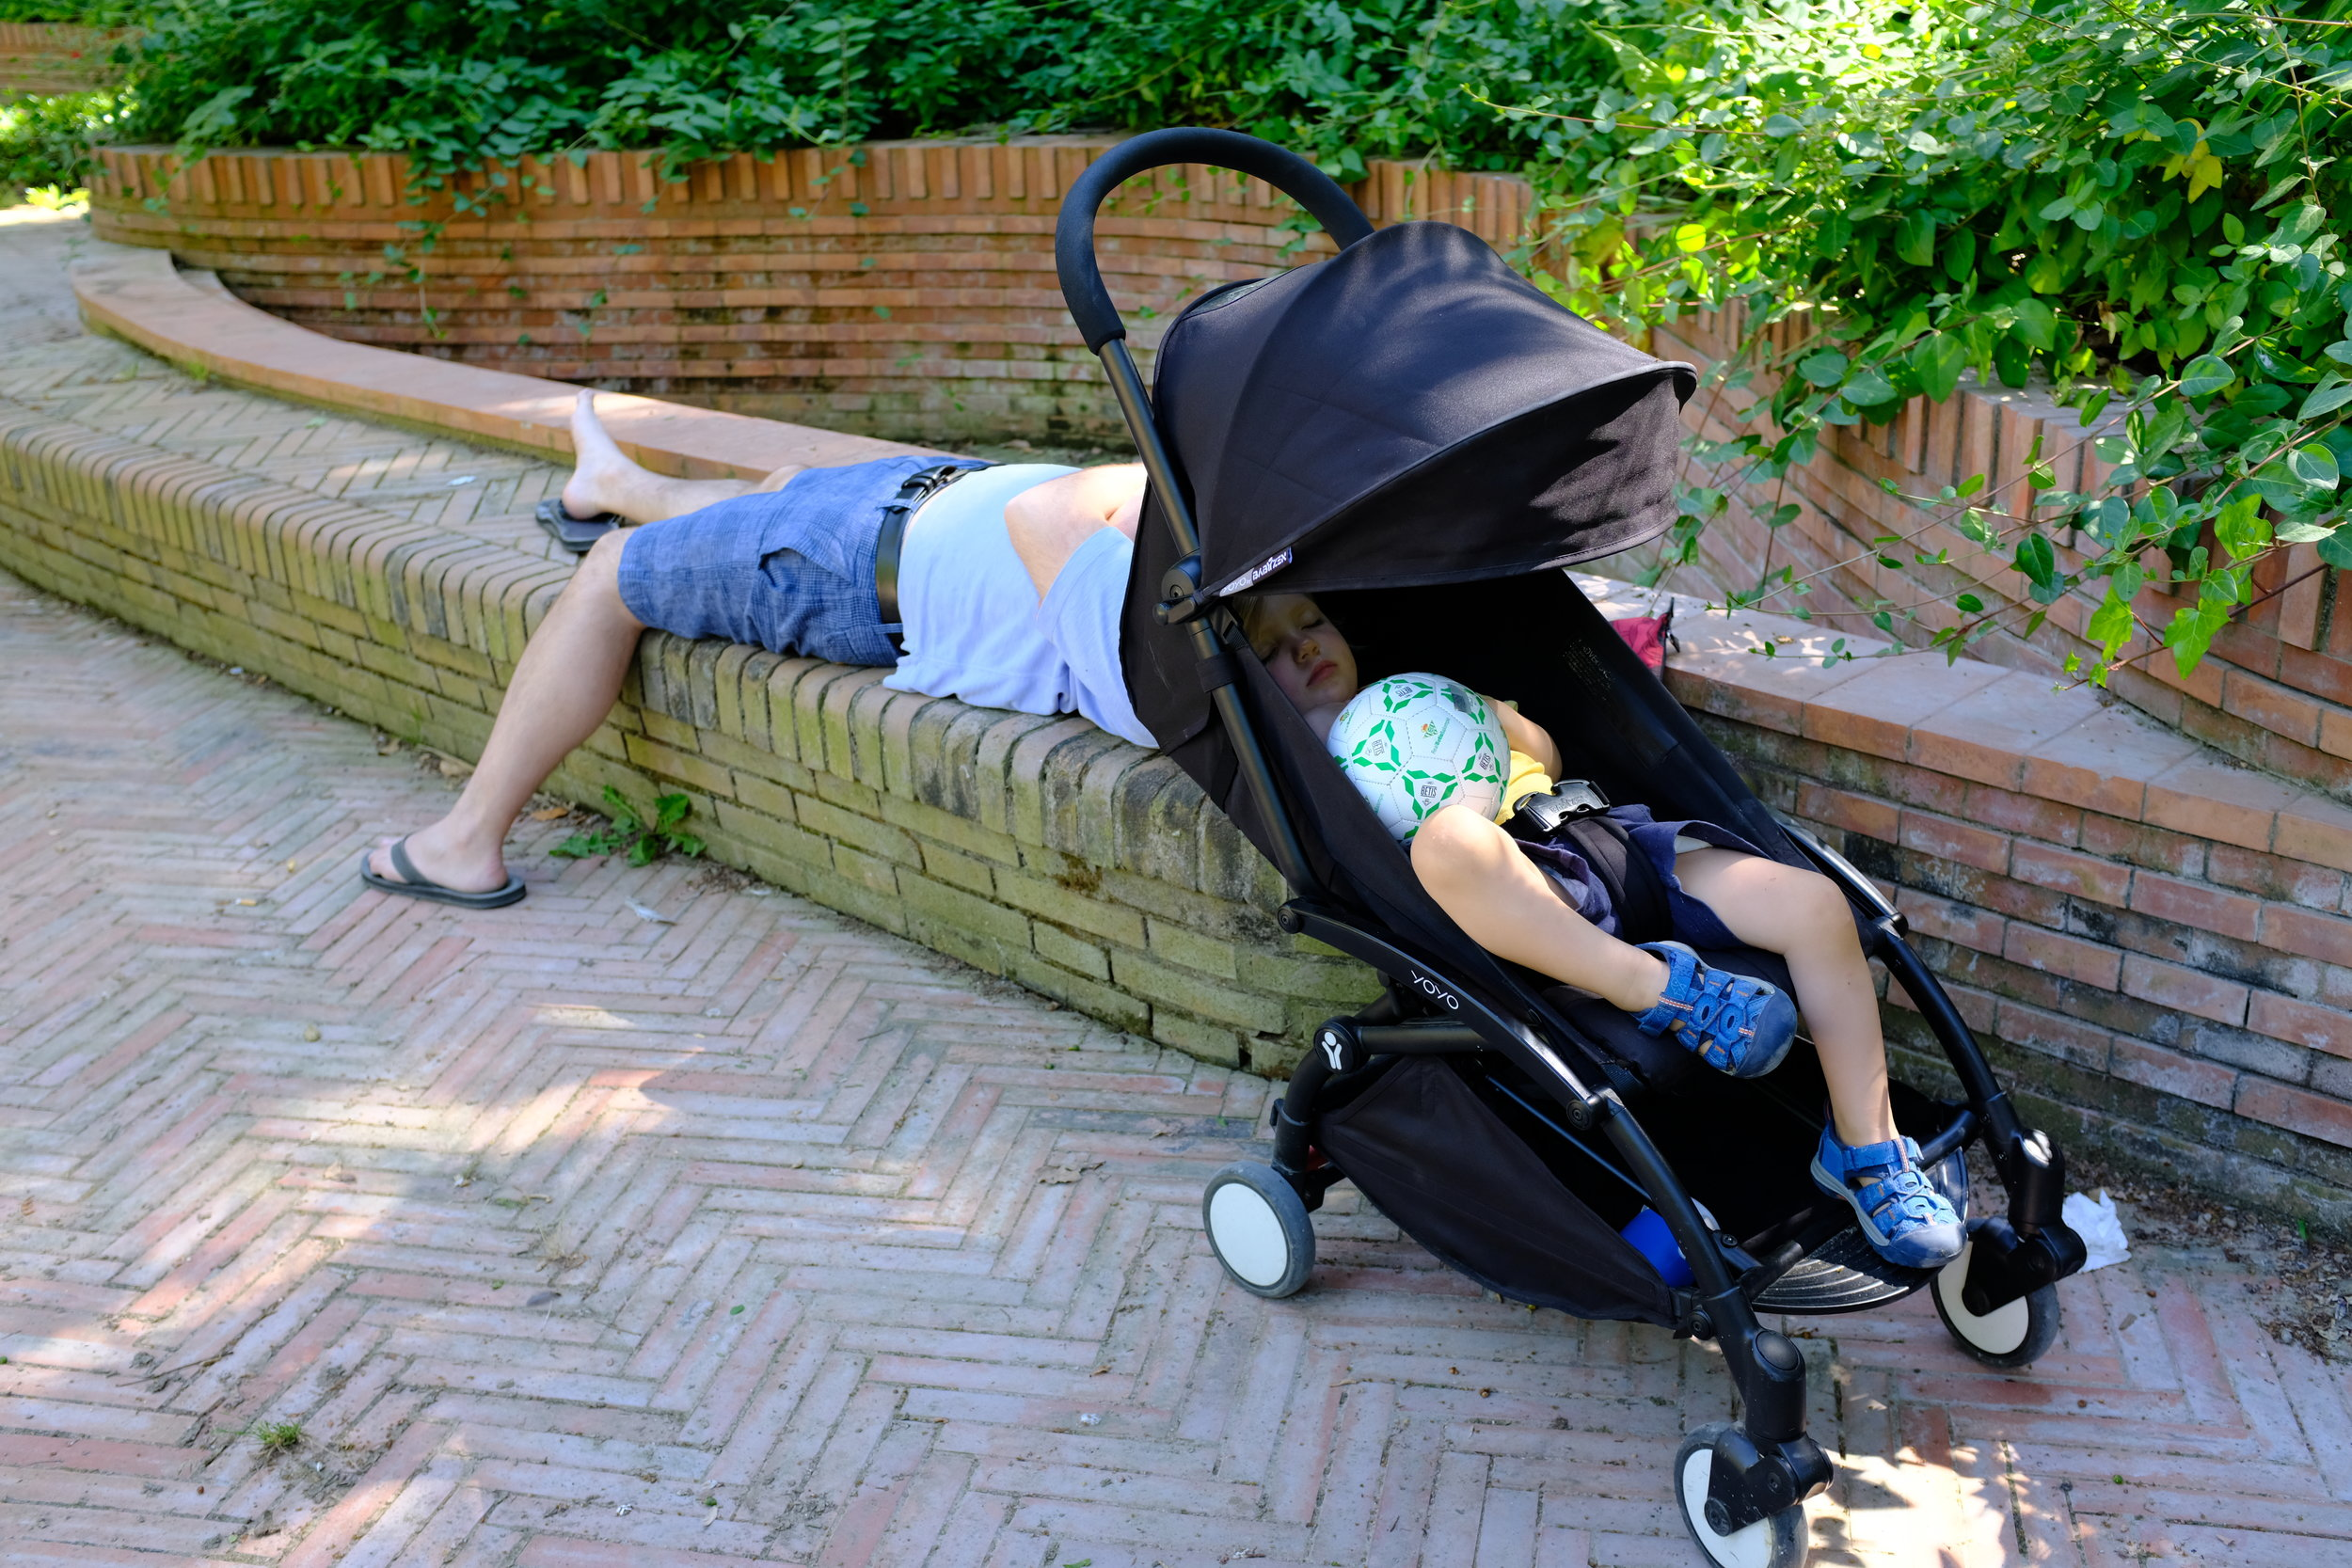 Jimmy and Daddy napping away at Parque de Maria Luisa in Seville, Spain.